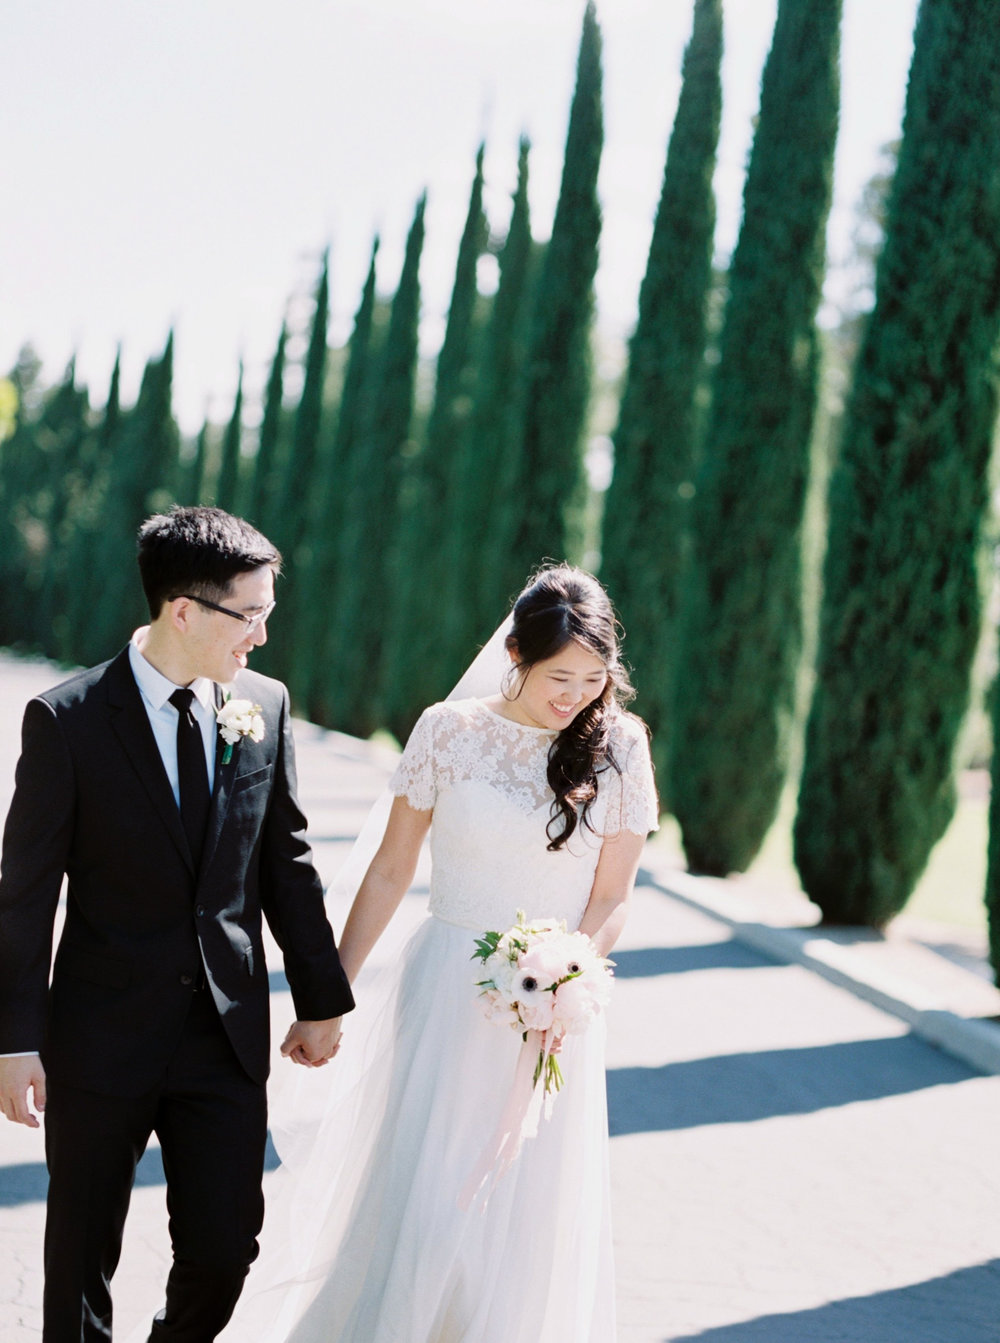 San Diego fine art wedding photographer | San Diego film photographer | San Diego wedding photographer | Whiskers and Willow Photography